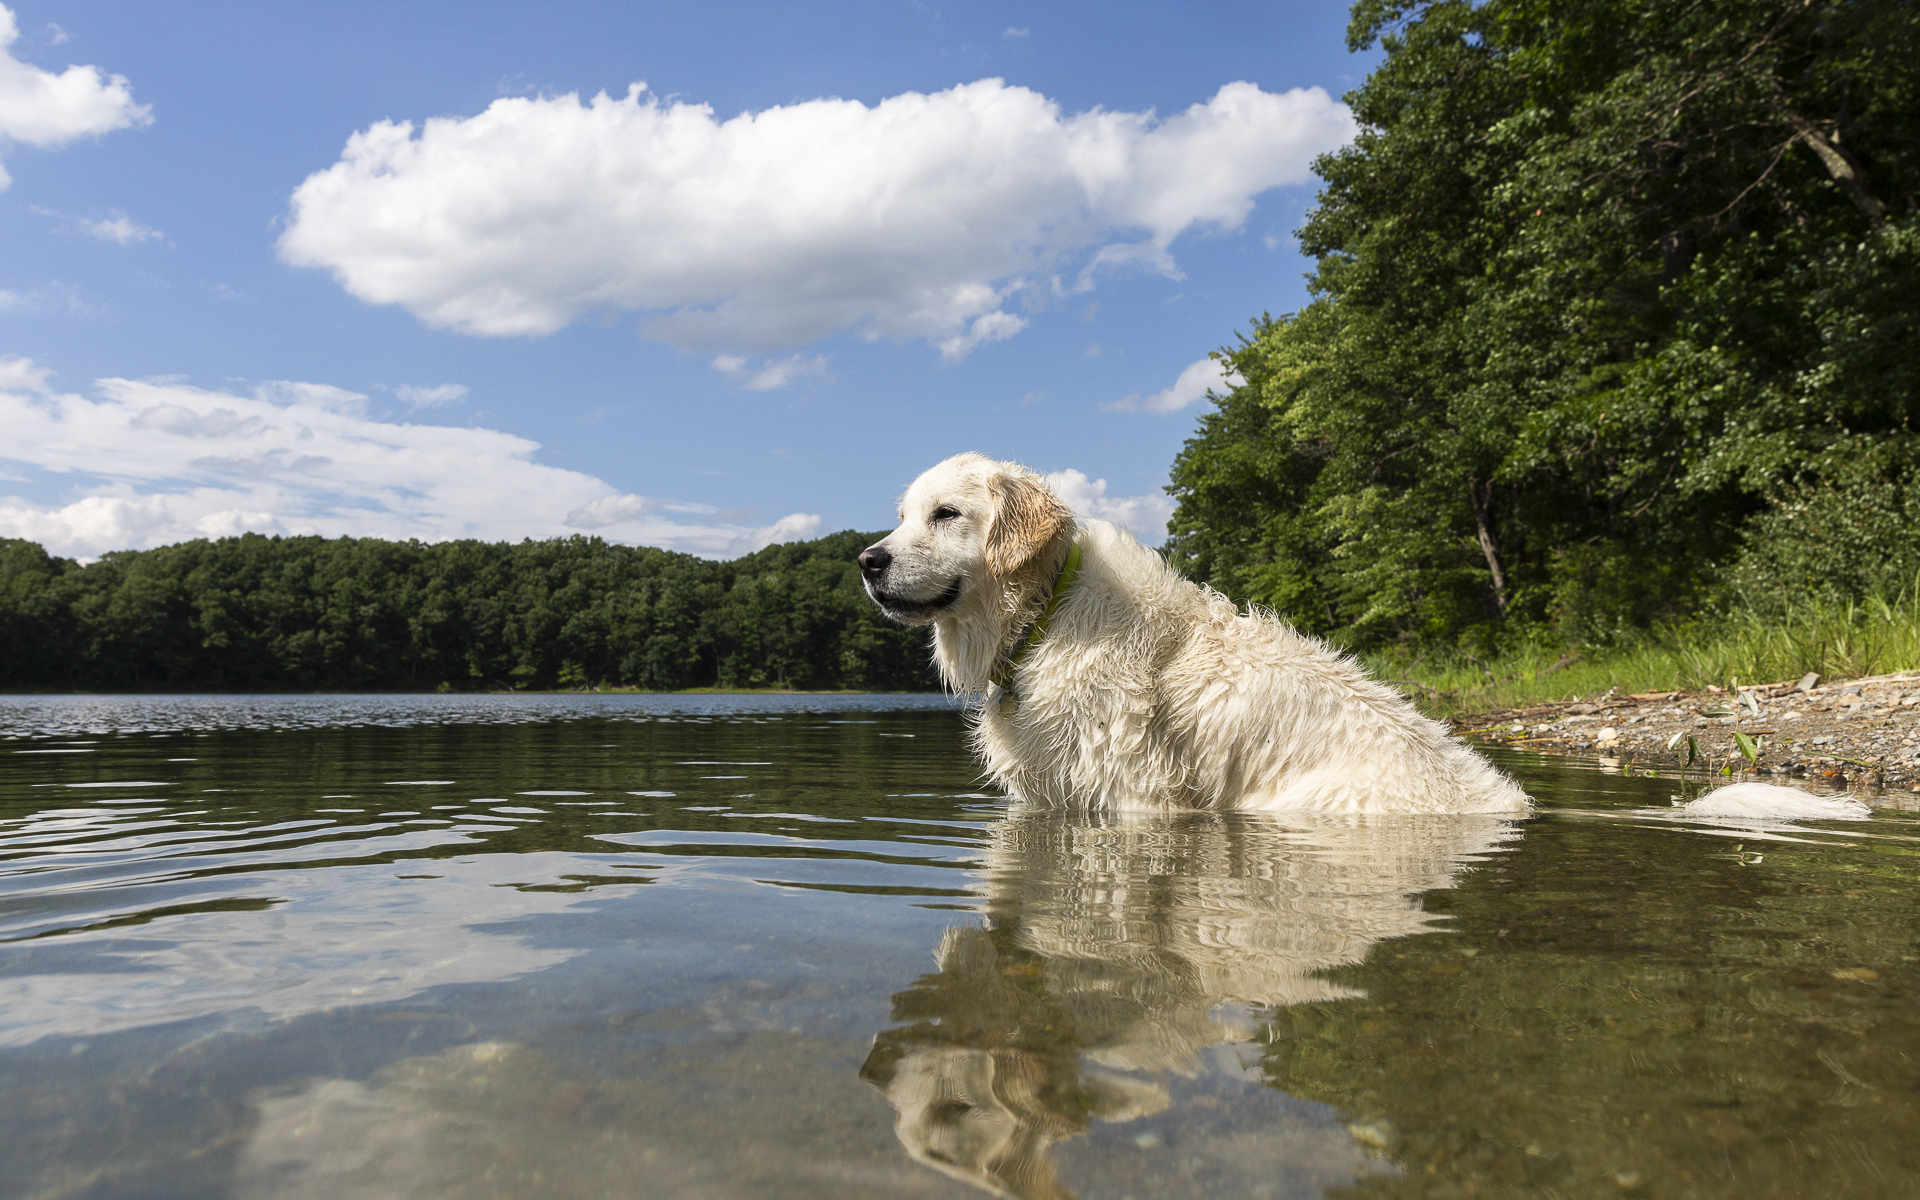 """""""I've been a regular for years so I get to go on off-leash adventures, this is my favorite watering hole to cool off in on hot days! It really feels like summer camp."""" - - SunnyBoarder"""